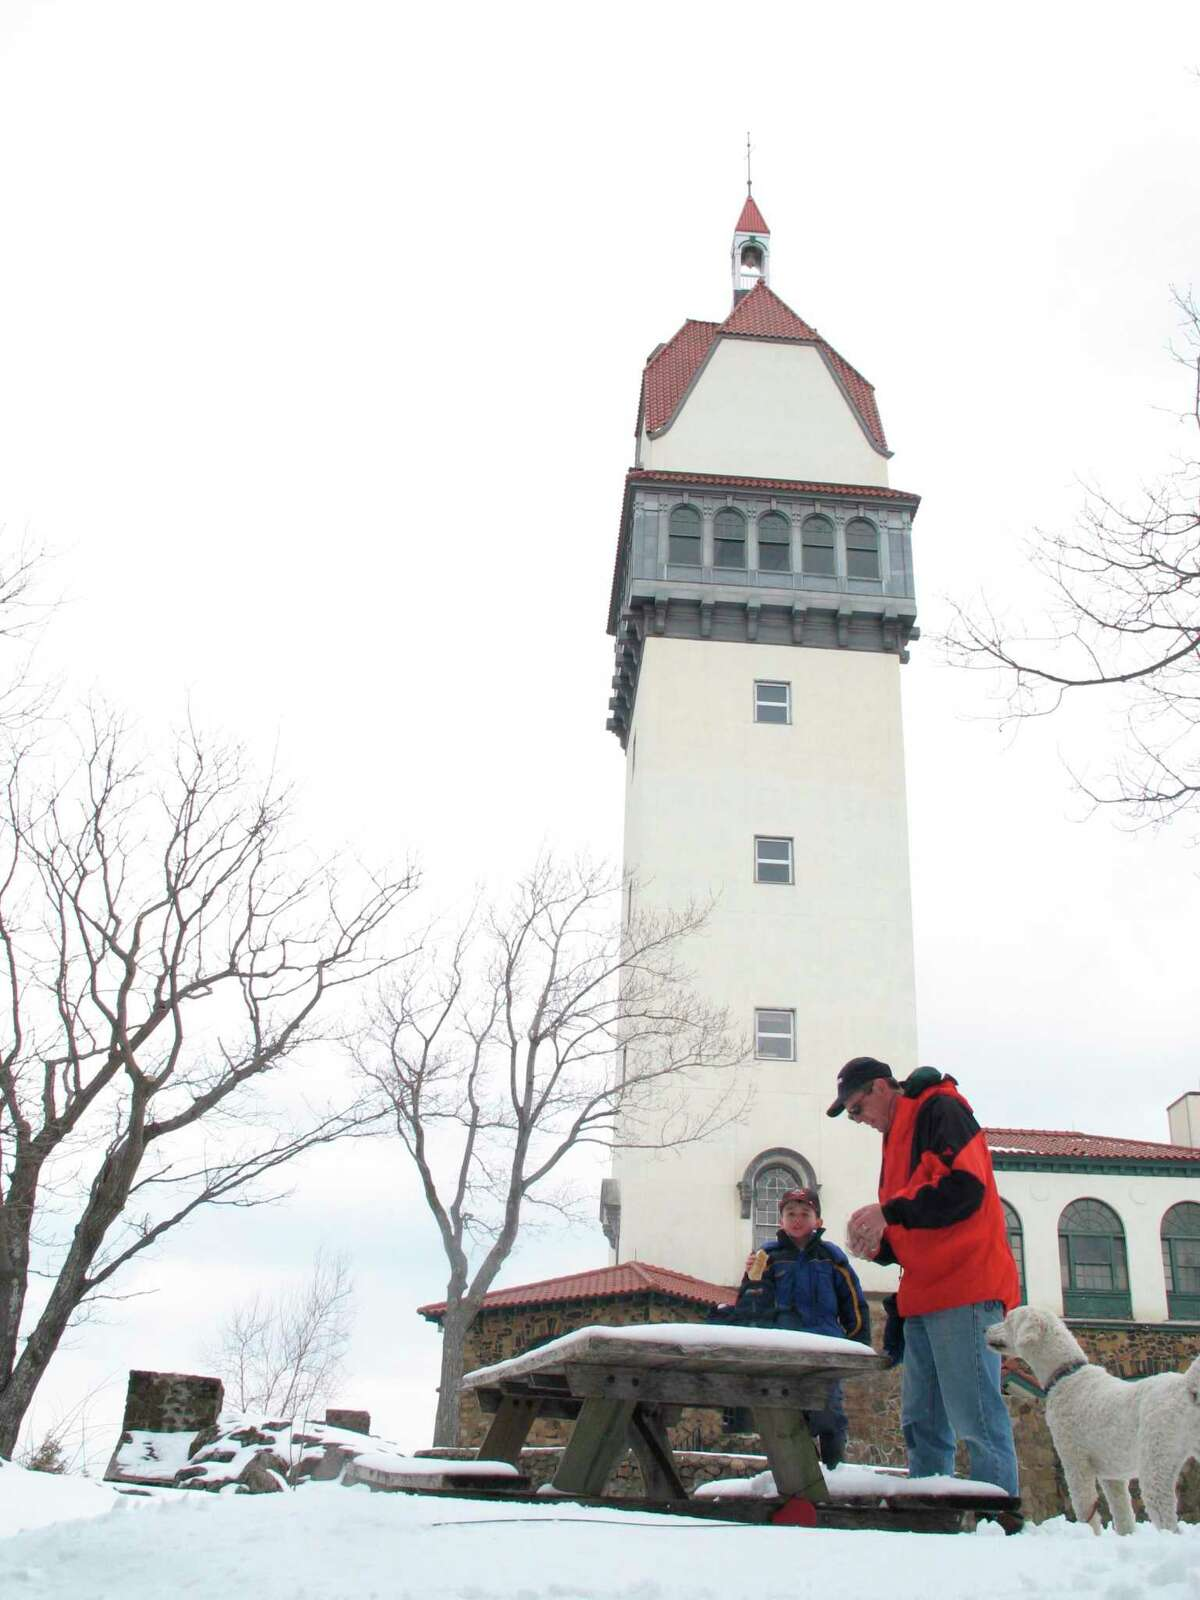 Simsbury_031305 Roger Potter, right, his son, Wilson, 5, and their standard poodle, Gordie, stop to eat at the top of Talcott Mountain next to Heublein Tower at Talcott State Park in Bloomfield on Sunday. The tower was built as a summer home for Gilbert Heublein in 1914, and offers a 1,000 high view of the Farmington River Valley. Chris Preovolos/Staff Photo CT View